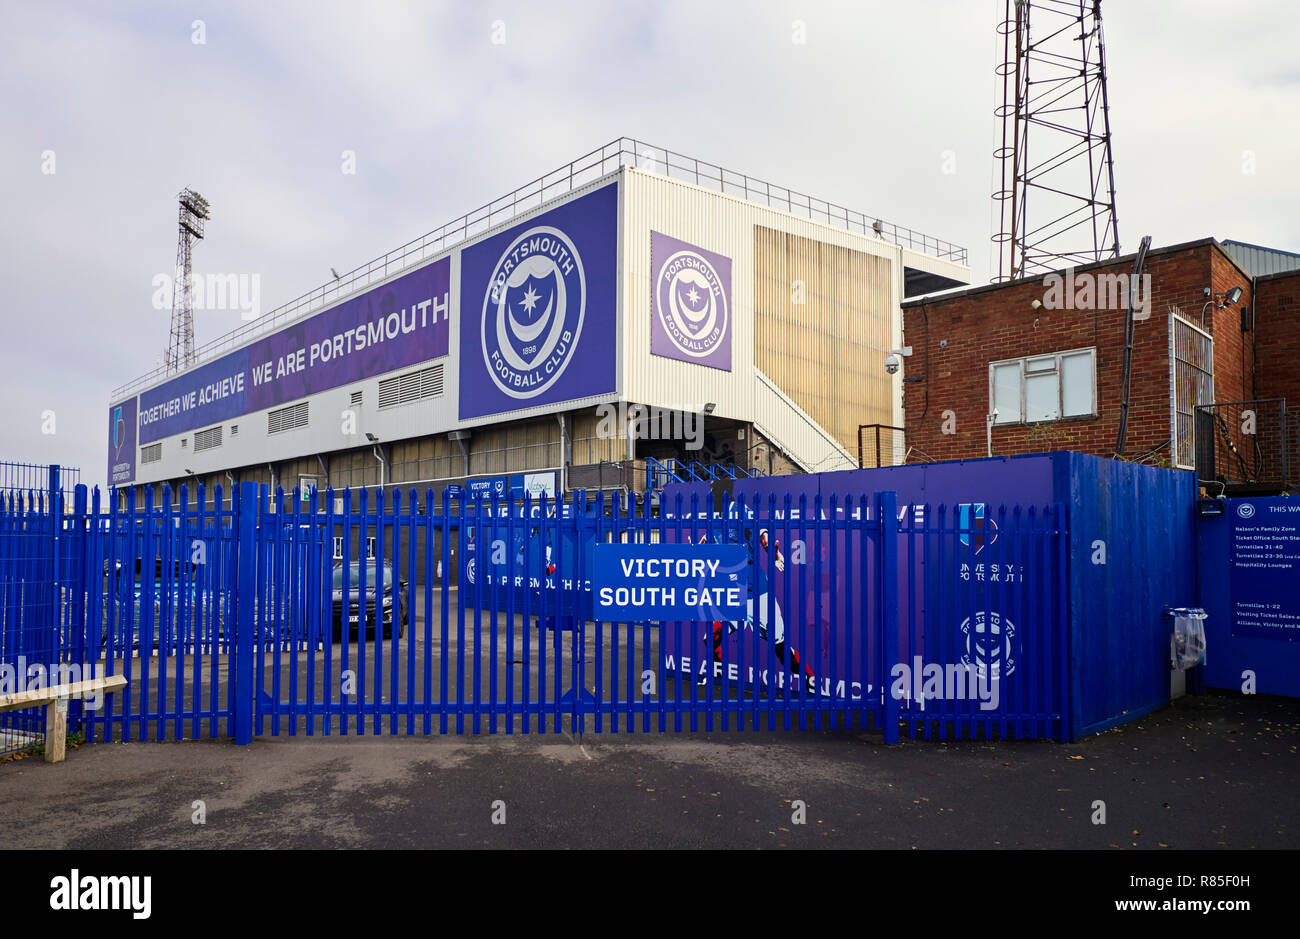 Victory south gate at Fratton park football ground in Portsmouth - Stock Image